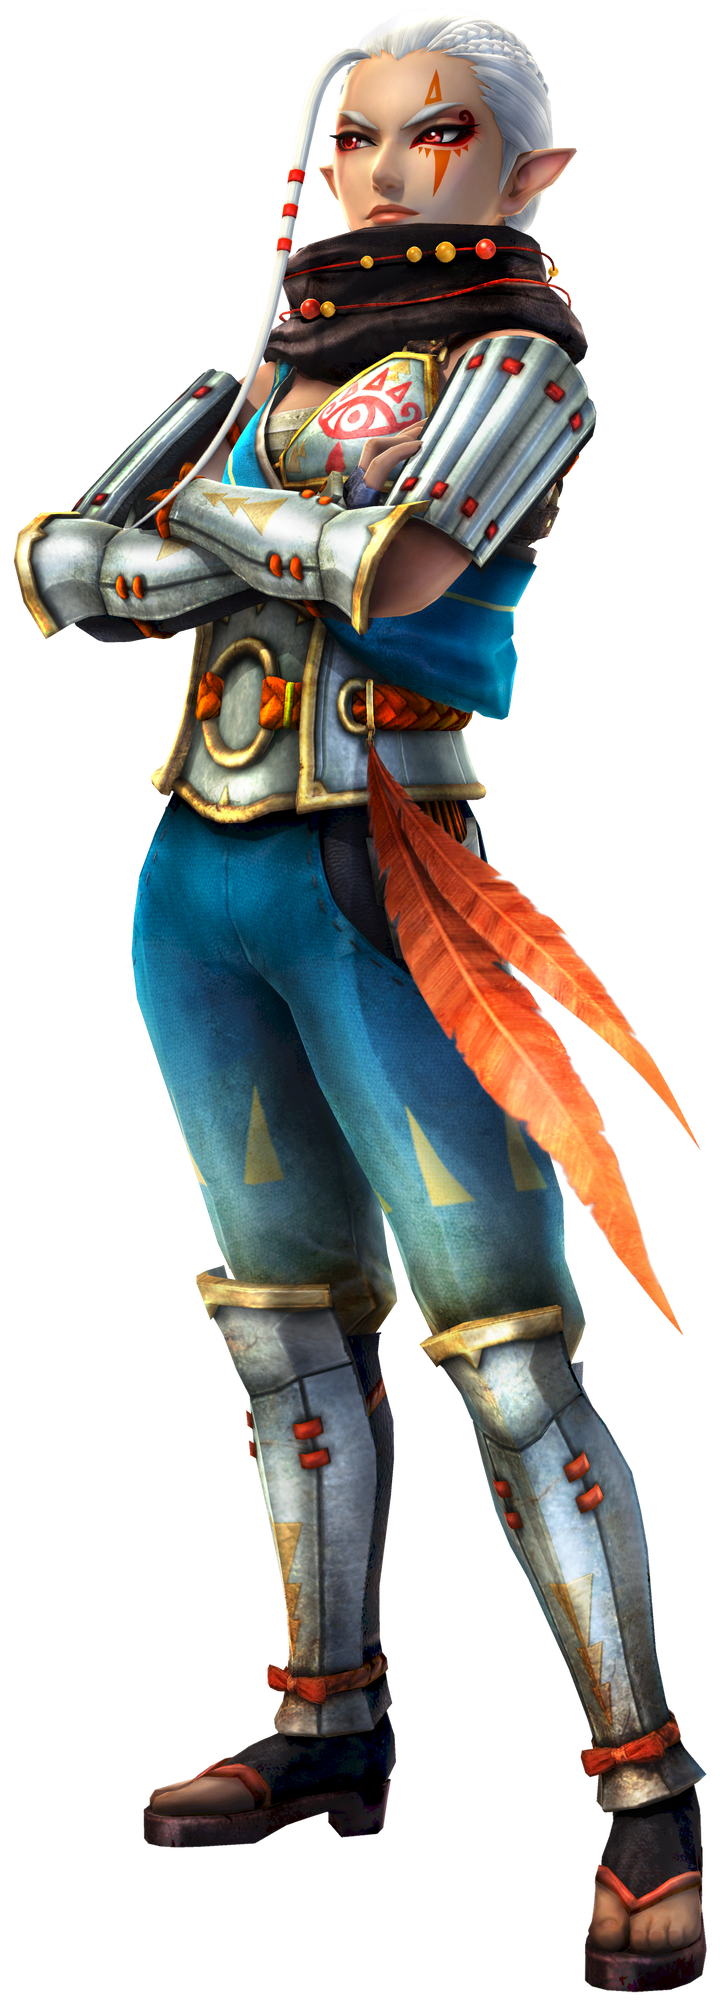 New Hyrule Warriors Age Of Calamity Gameplay Includes New Character Impa Resetera